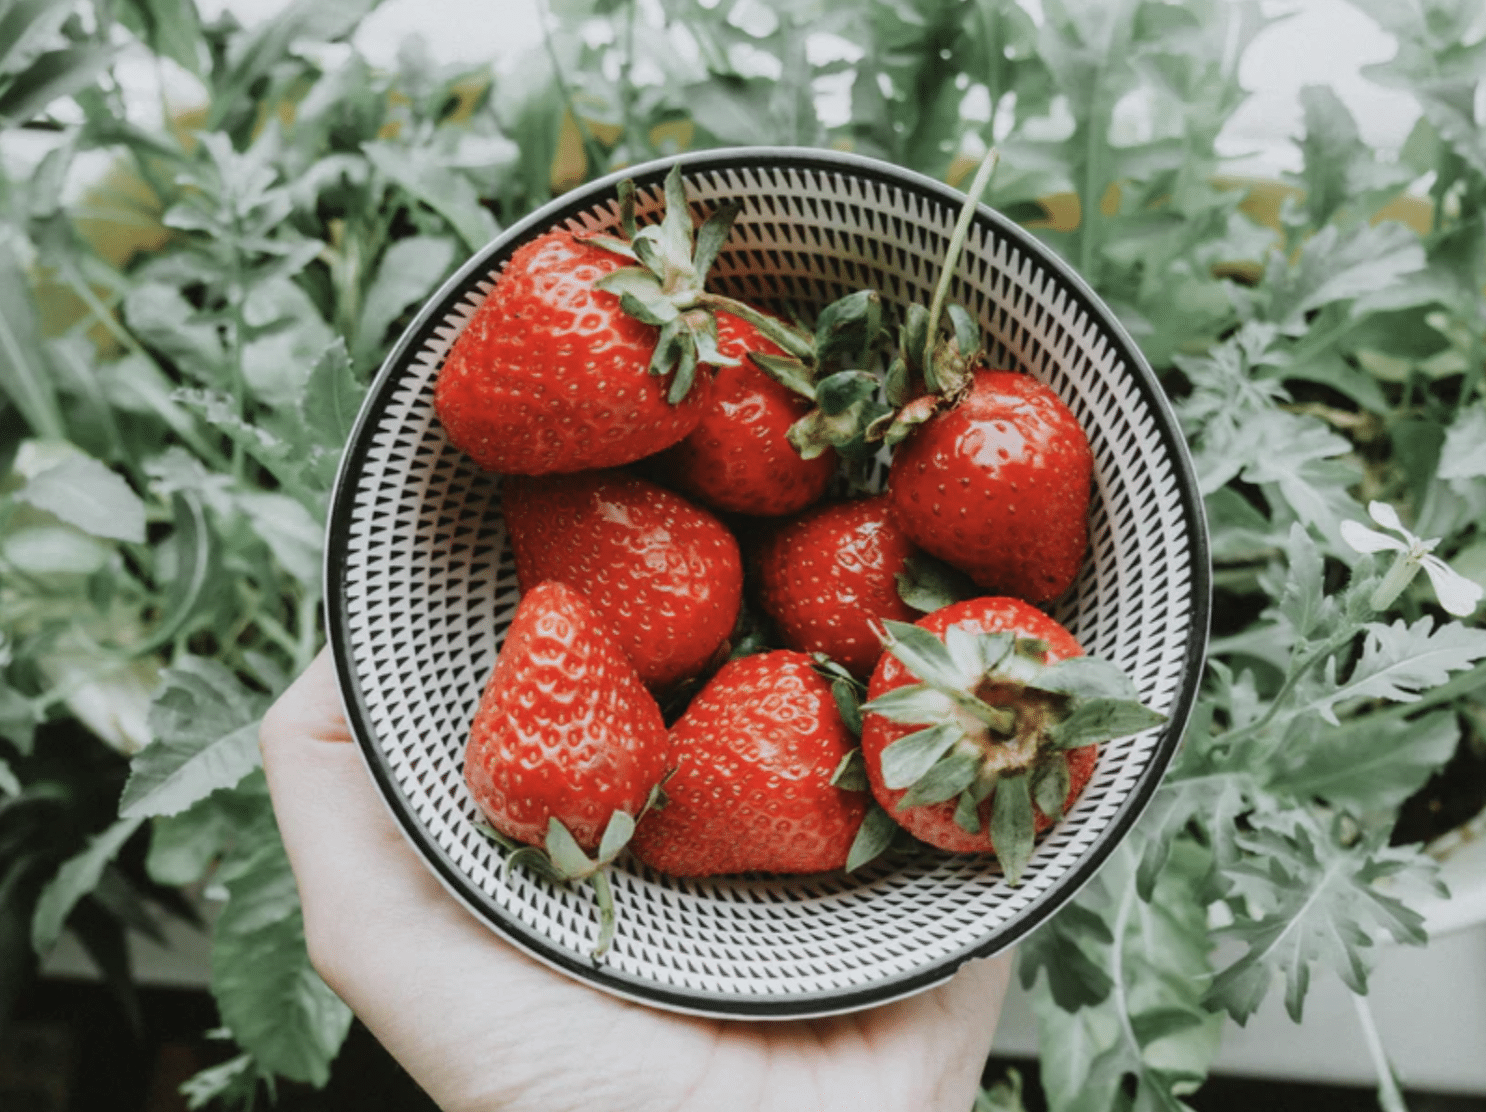 What fruit and vegetables can you grow in your London home?